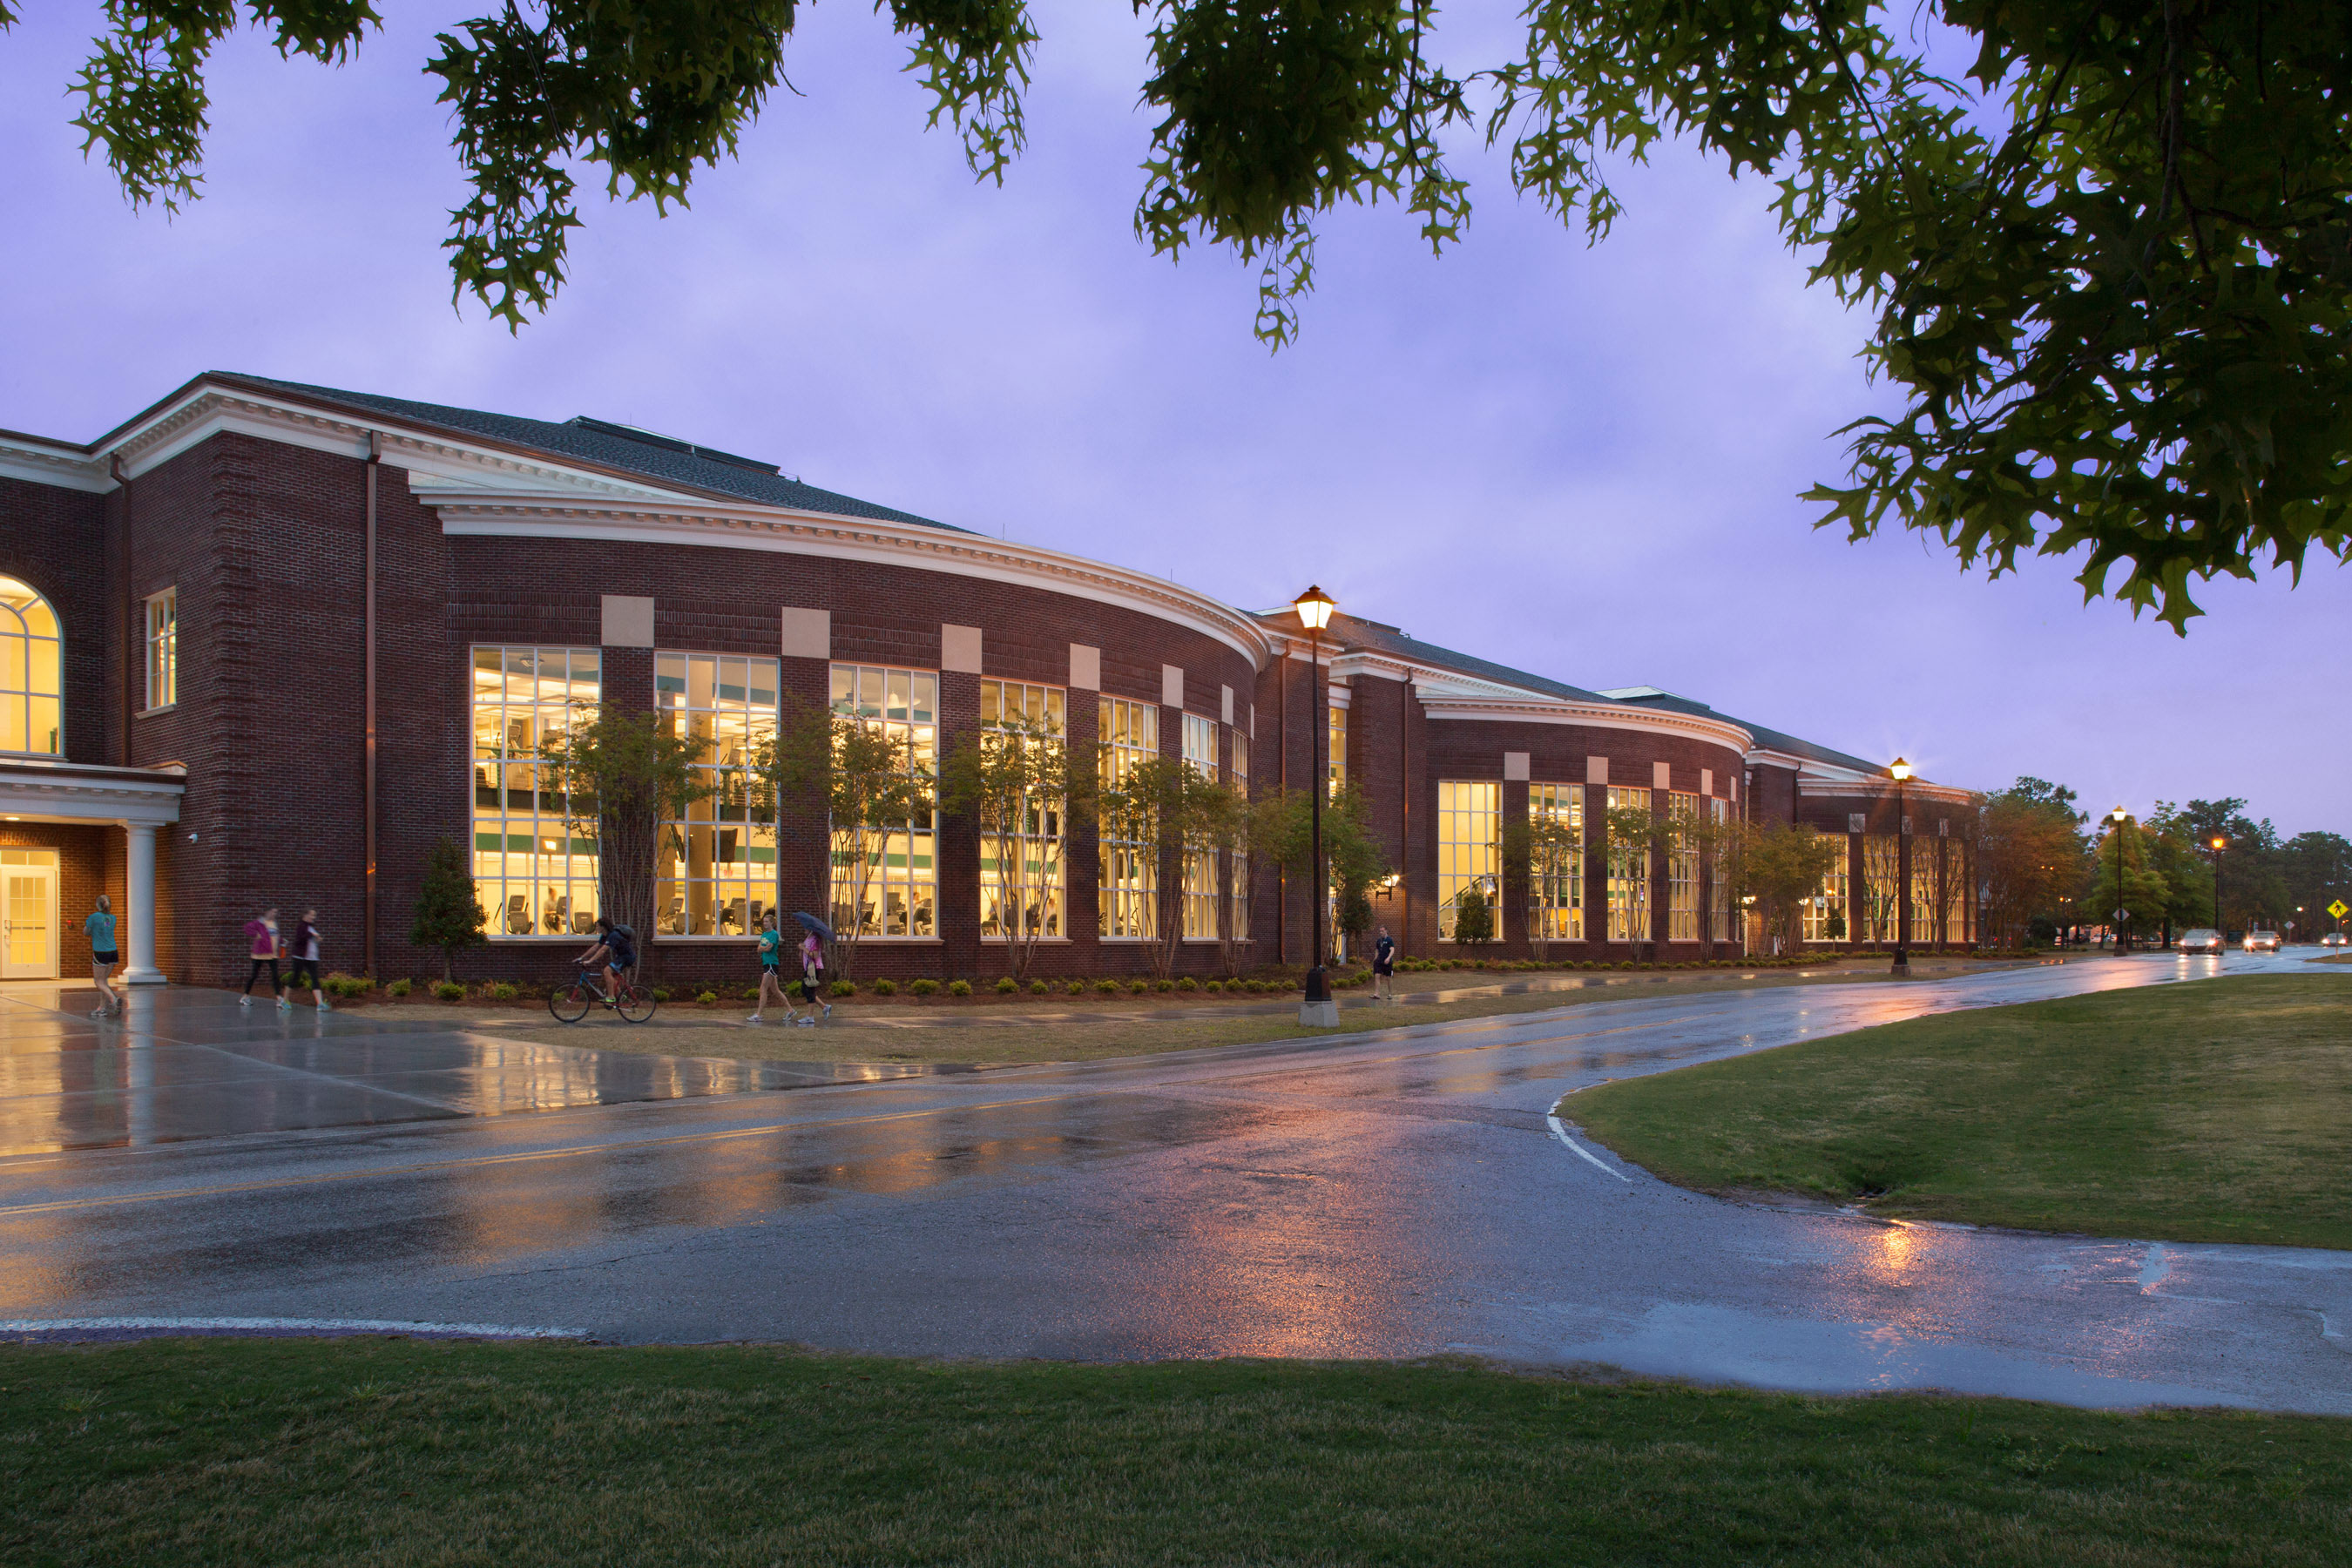 UNCW Student Rec Center Featured as AB's Facility of the Week